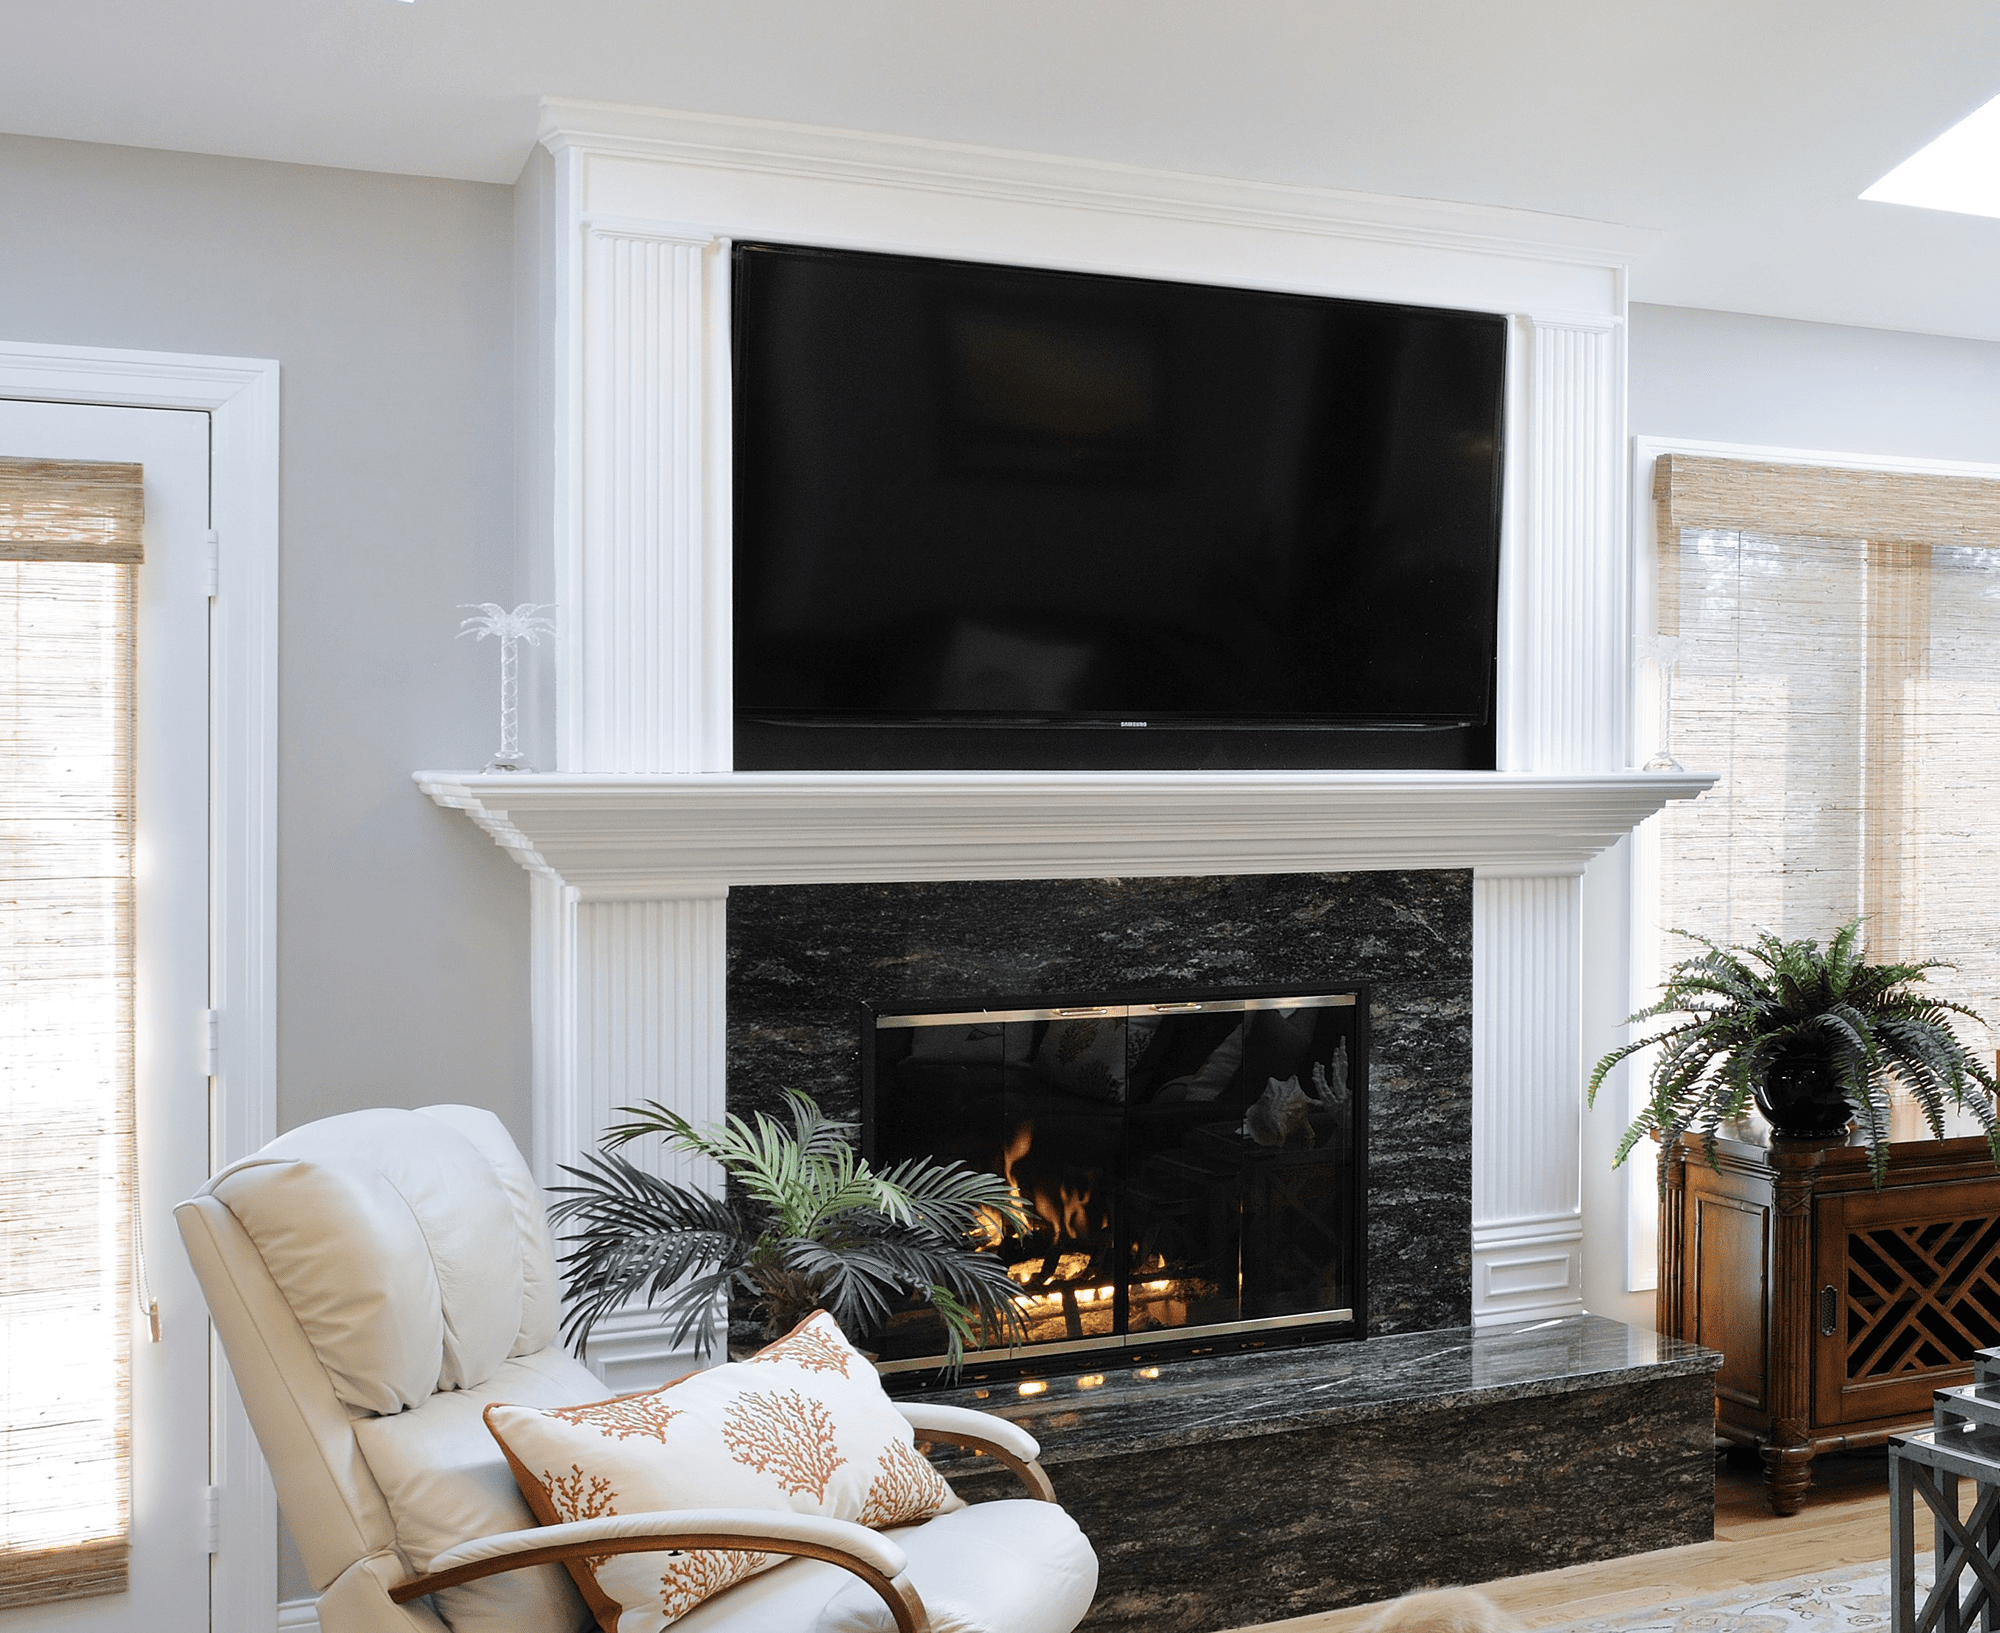 Gray rolling armchair near electric fireplace